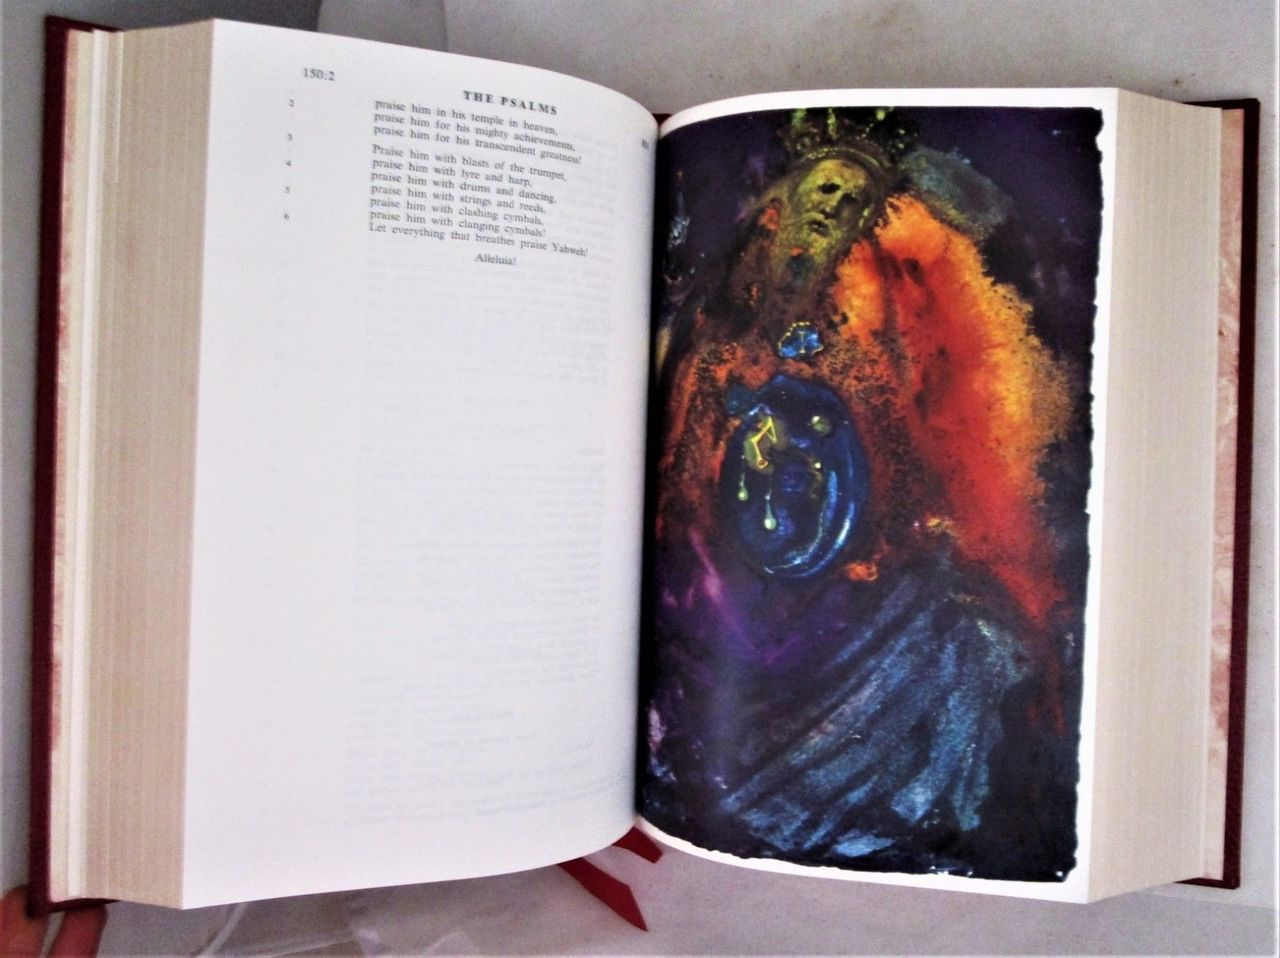 THE JERUSALEM BIBLE, illustrated by Dali - 1970